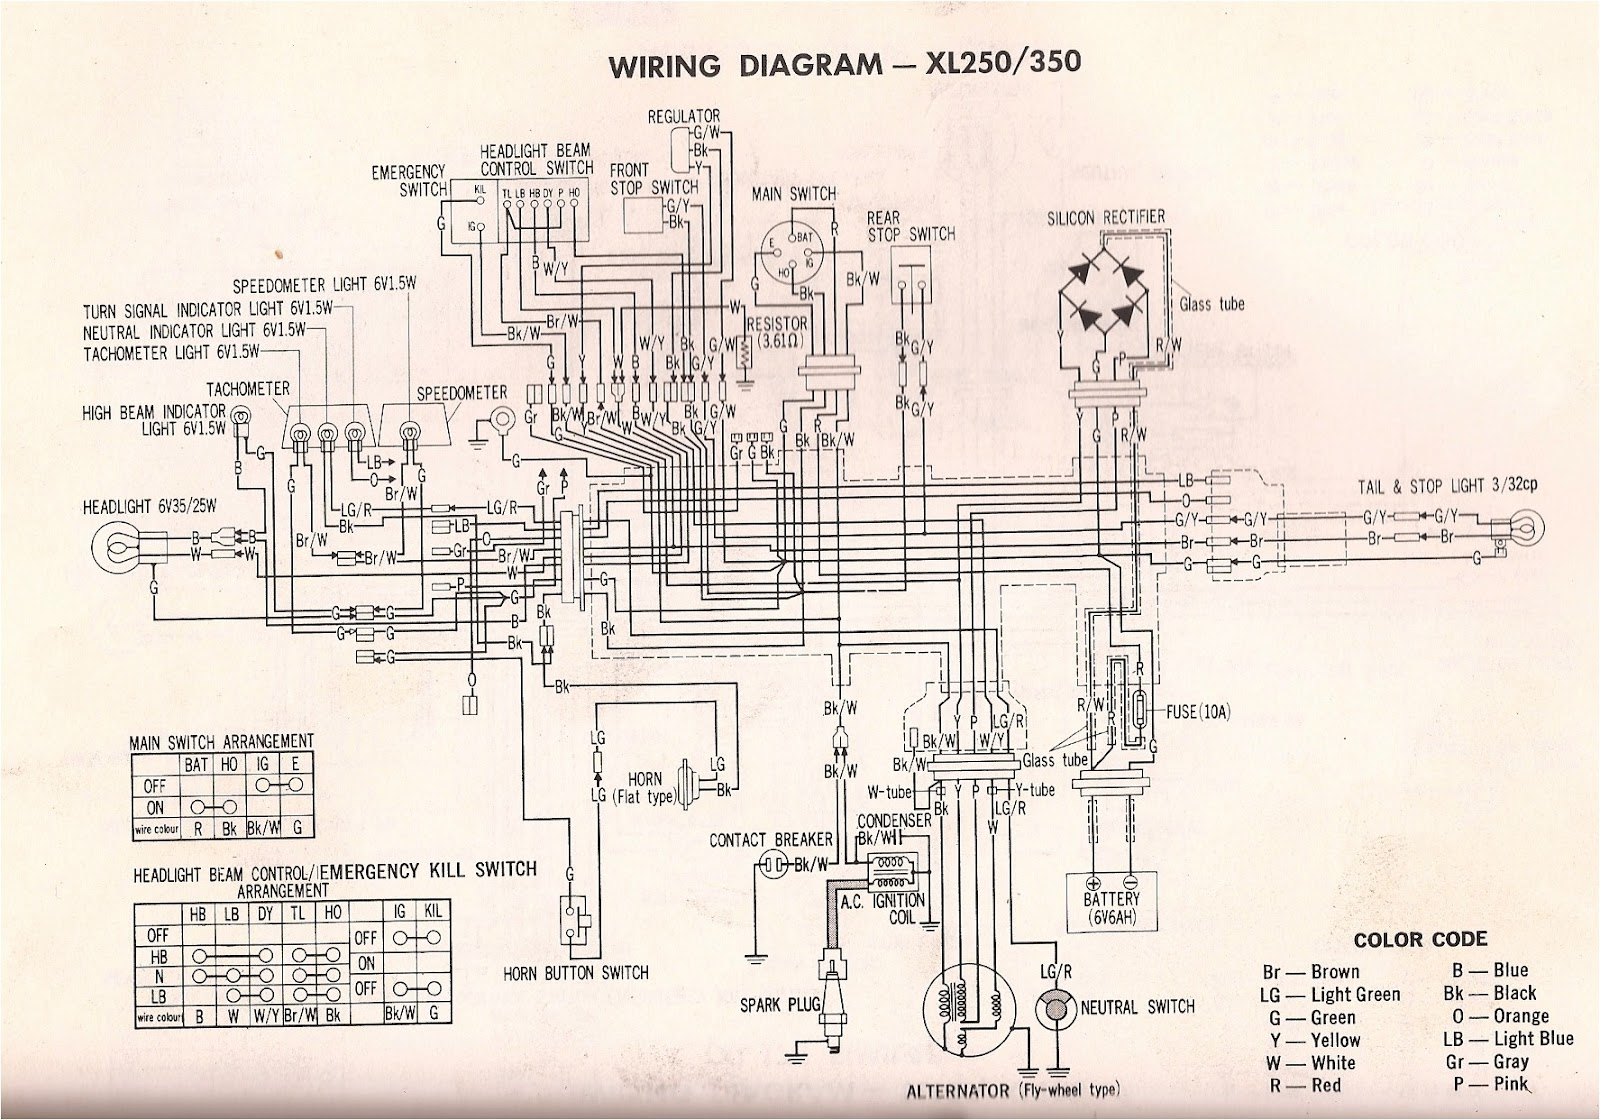 XL350+Wiring+diagram+S r4l xl350 wiring diagram (and xl250) 1974 honda cb360 wiring diagram at alyssarenee.co